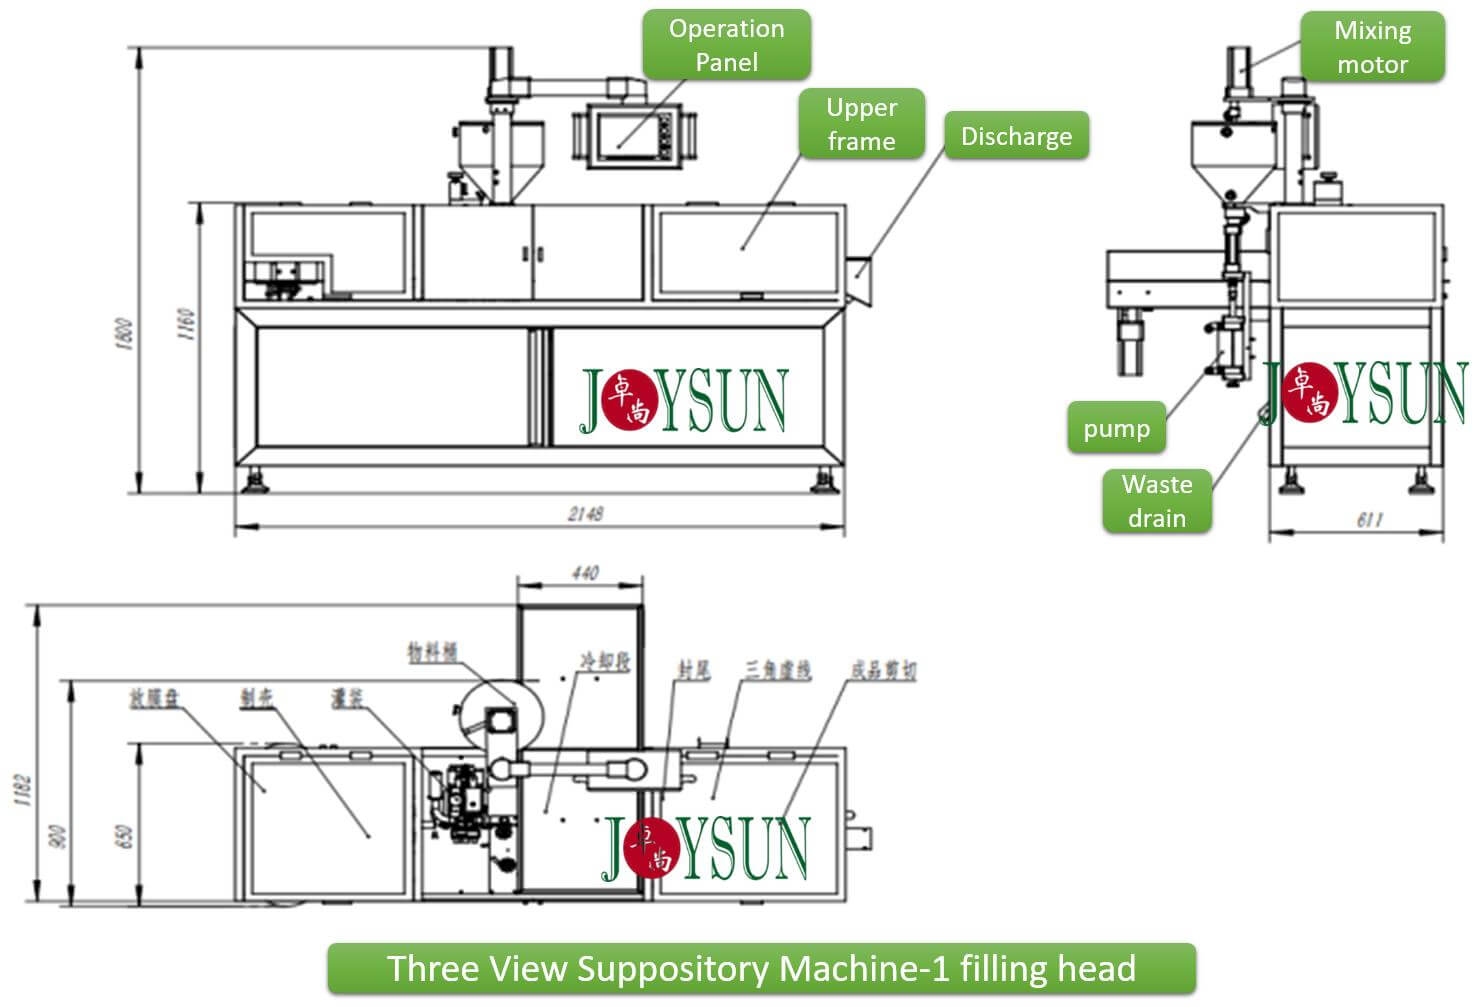 suppository-filling-sealing-mahcine-1-filling-head